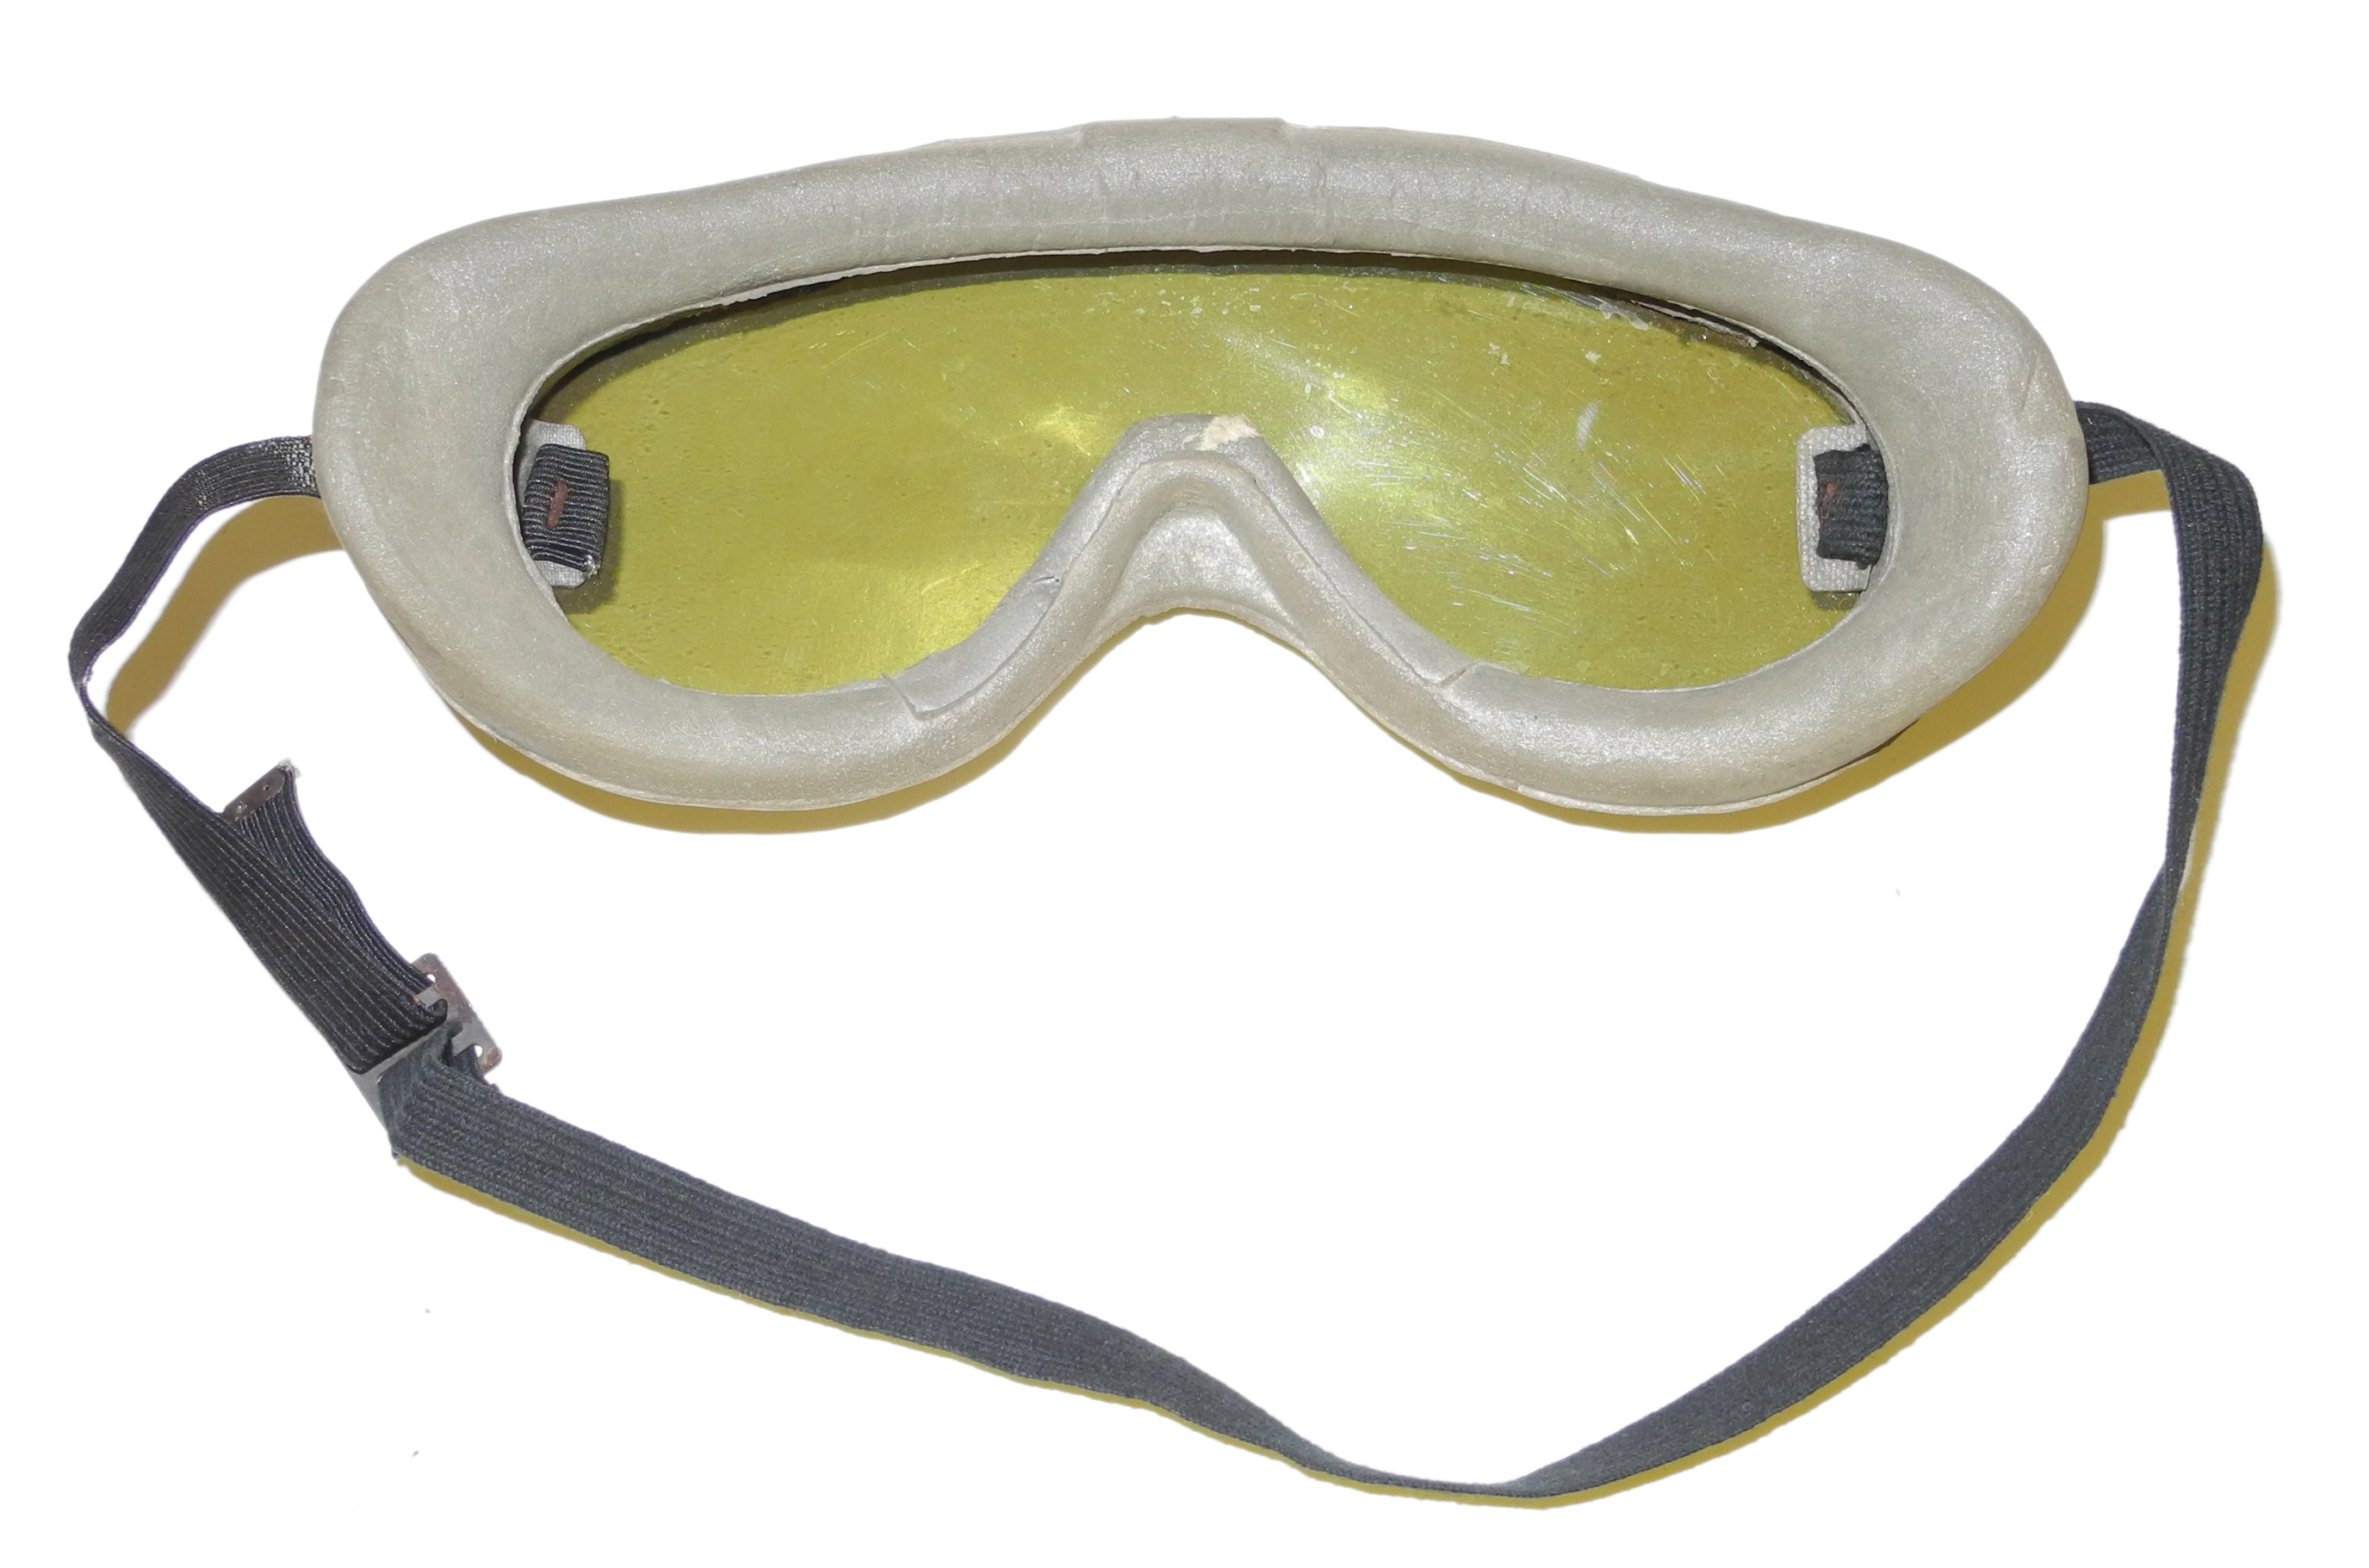 AAF Polaroid 1021 goggle kit